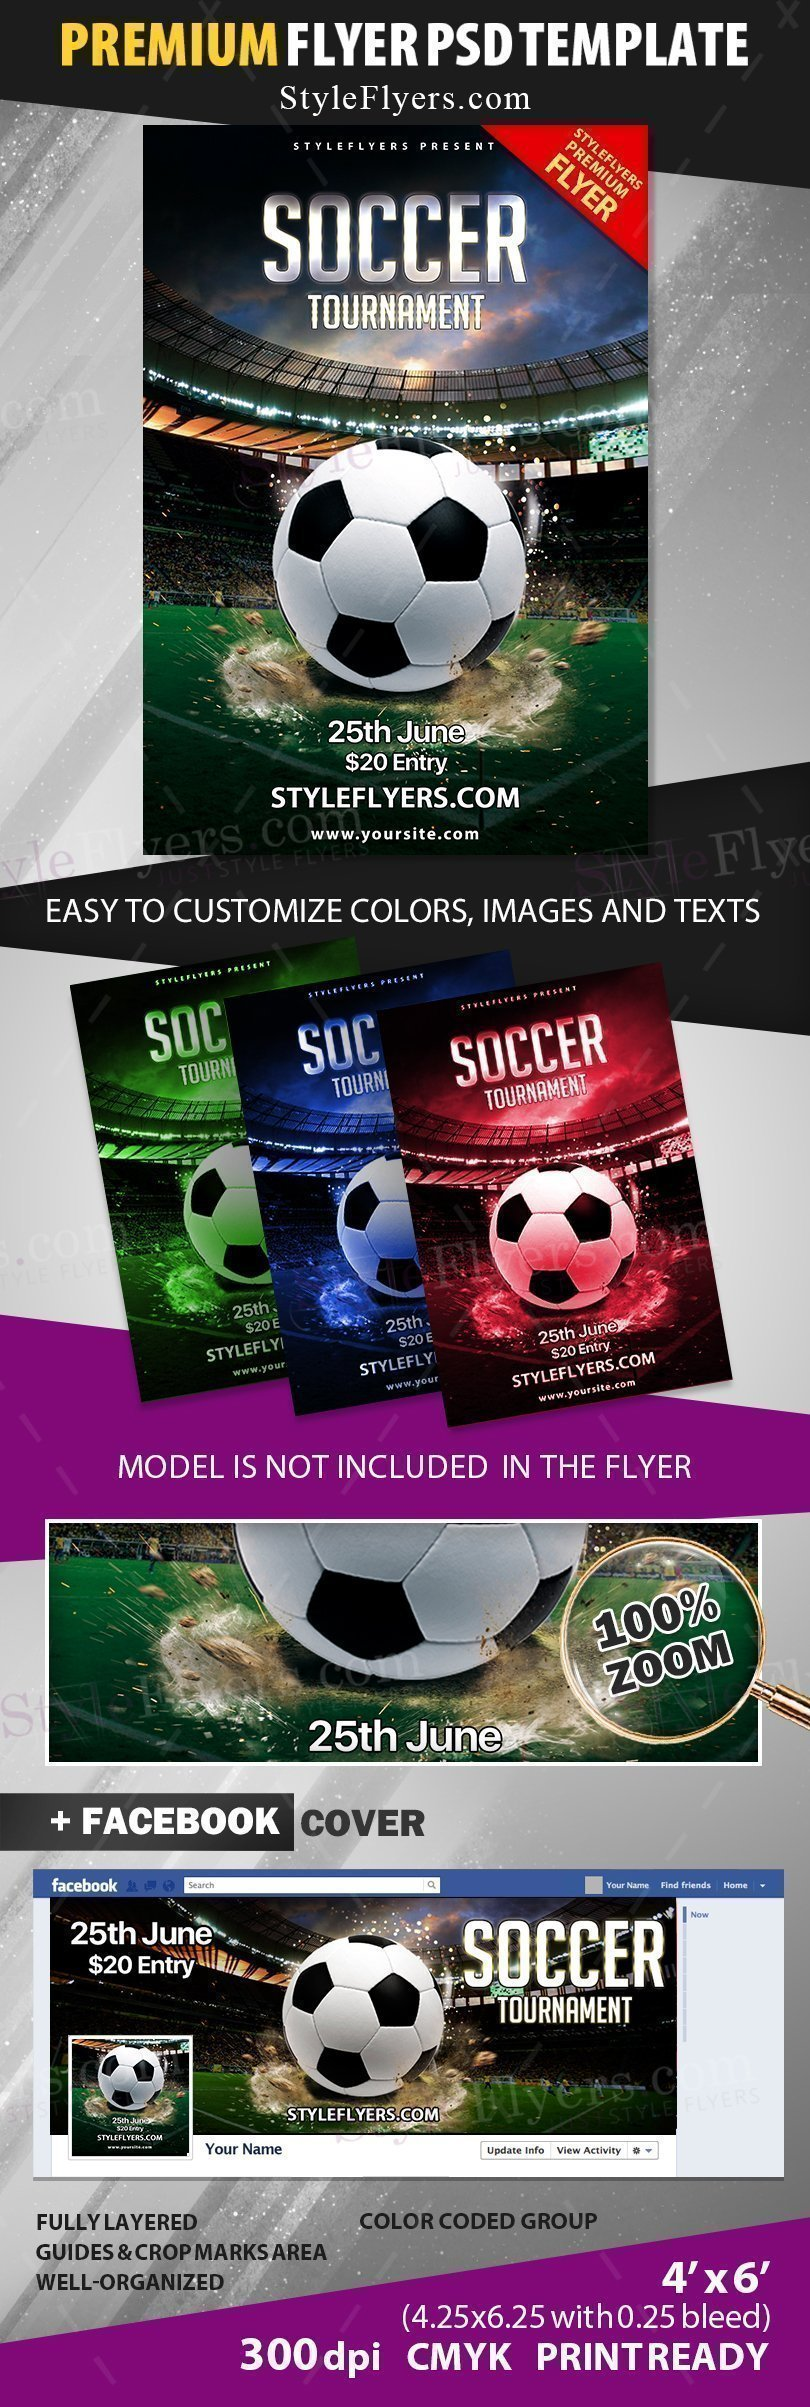 preview_Soccer Tournament_psd_flyer